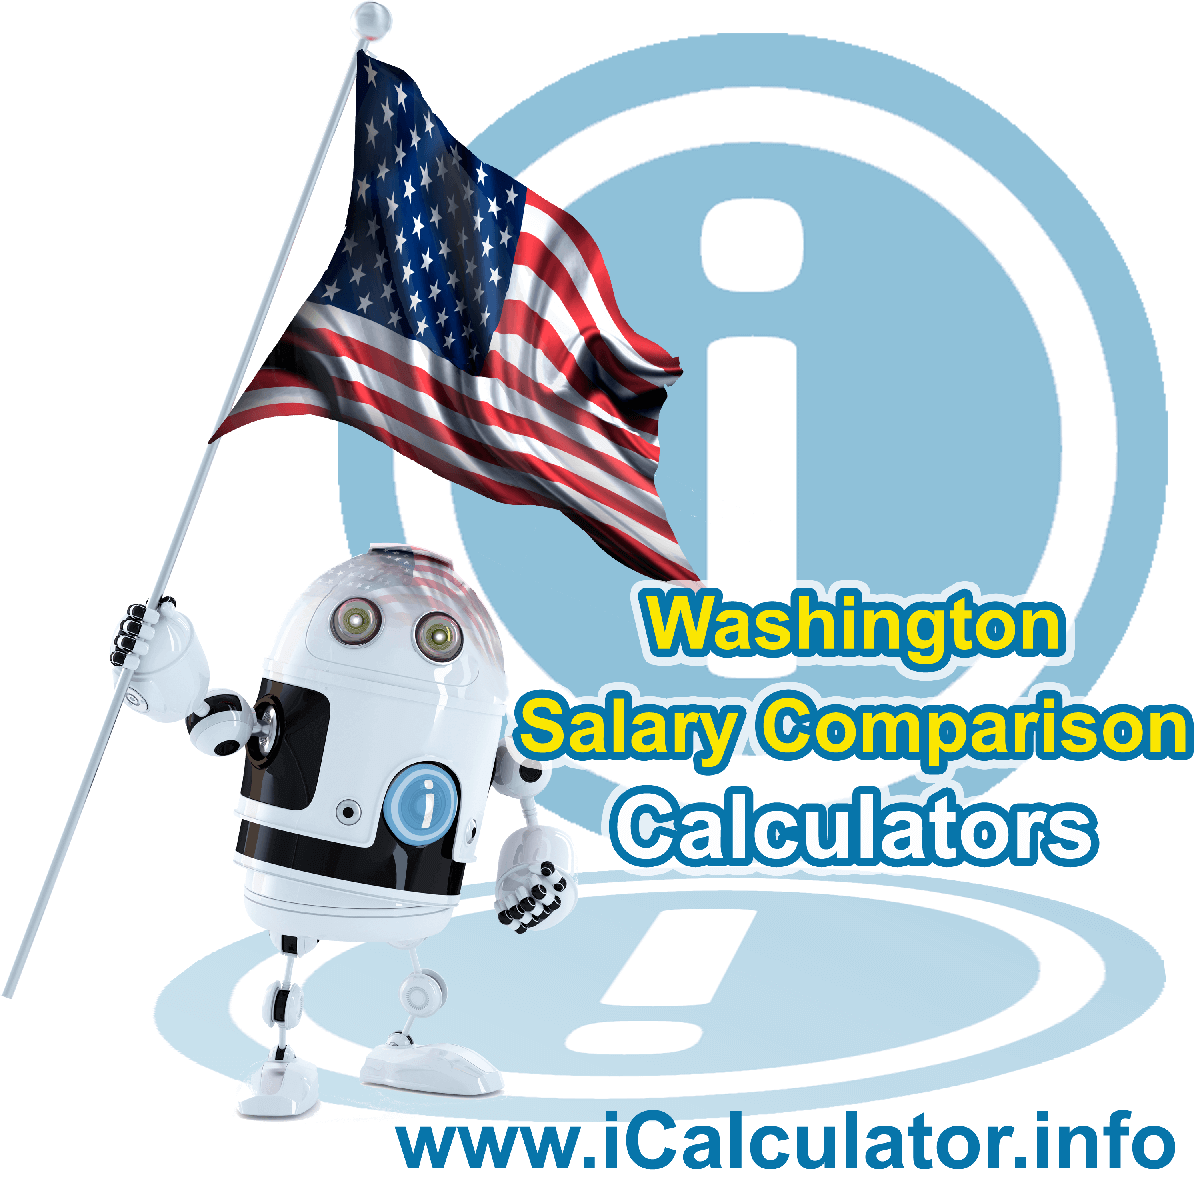 Washington Salary Comparison Calculator 2021 | iCalculator™ | The Washington Salary Comparison Calculator allows you to quickly calculate and compare upto 6 salaries in Washington or between other states for the 2021 tax year and historical tax years. Its an excellent tool for jobseekers, pay raise comparison and comparison of salaries between different US States